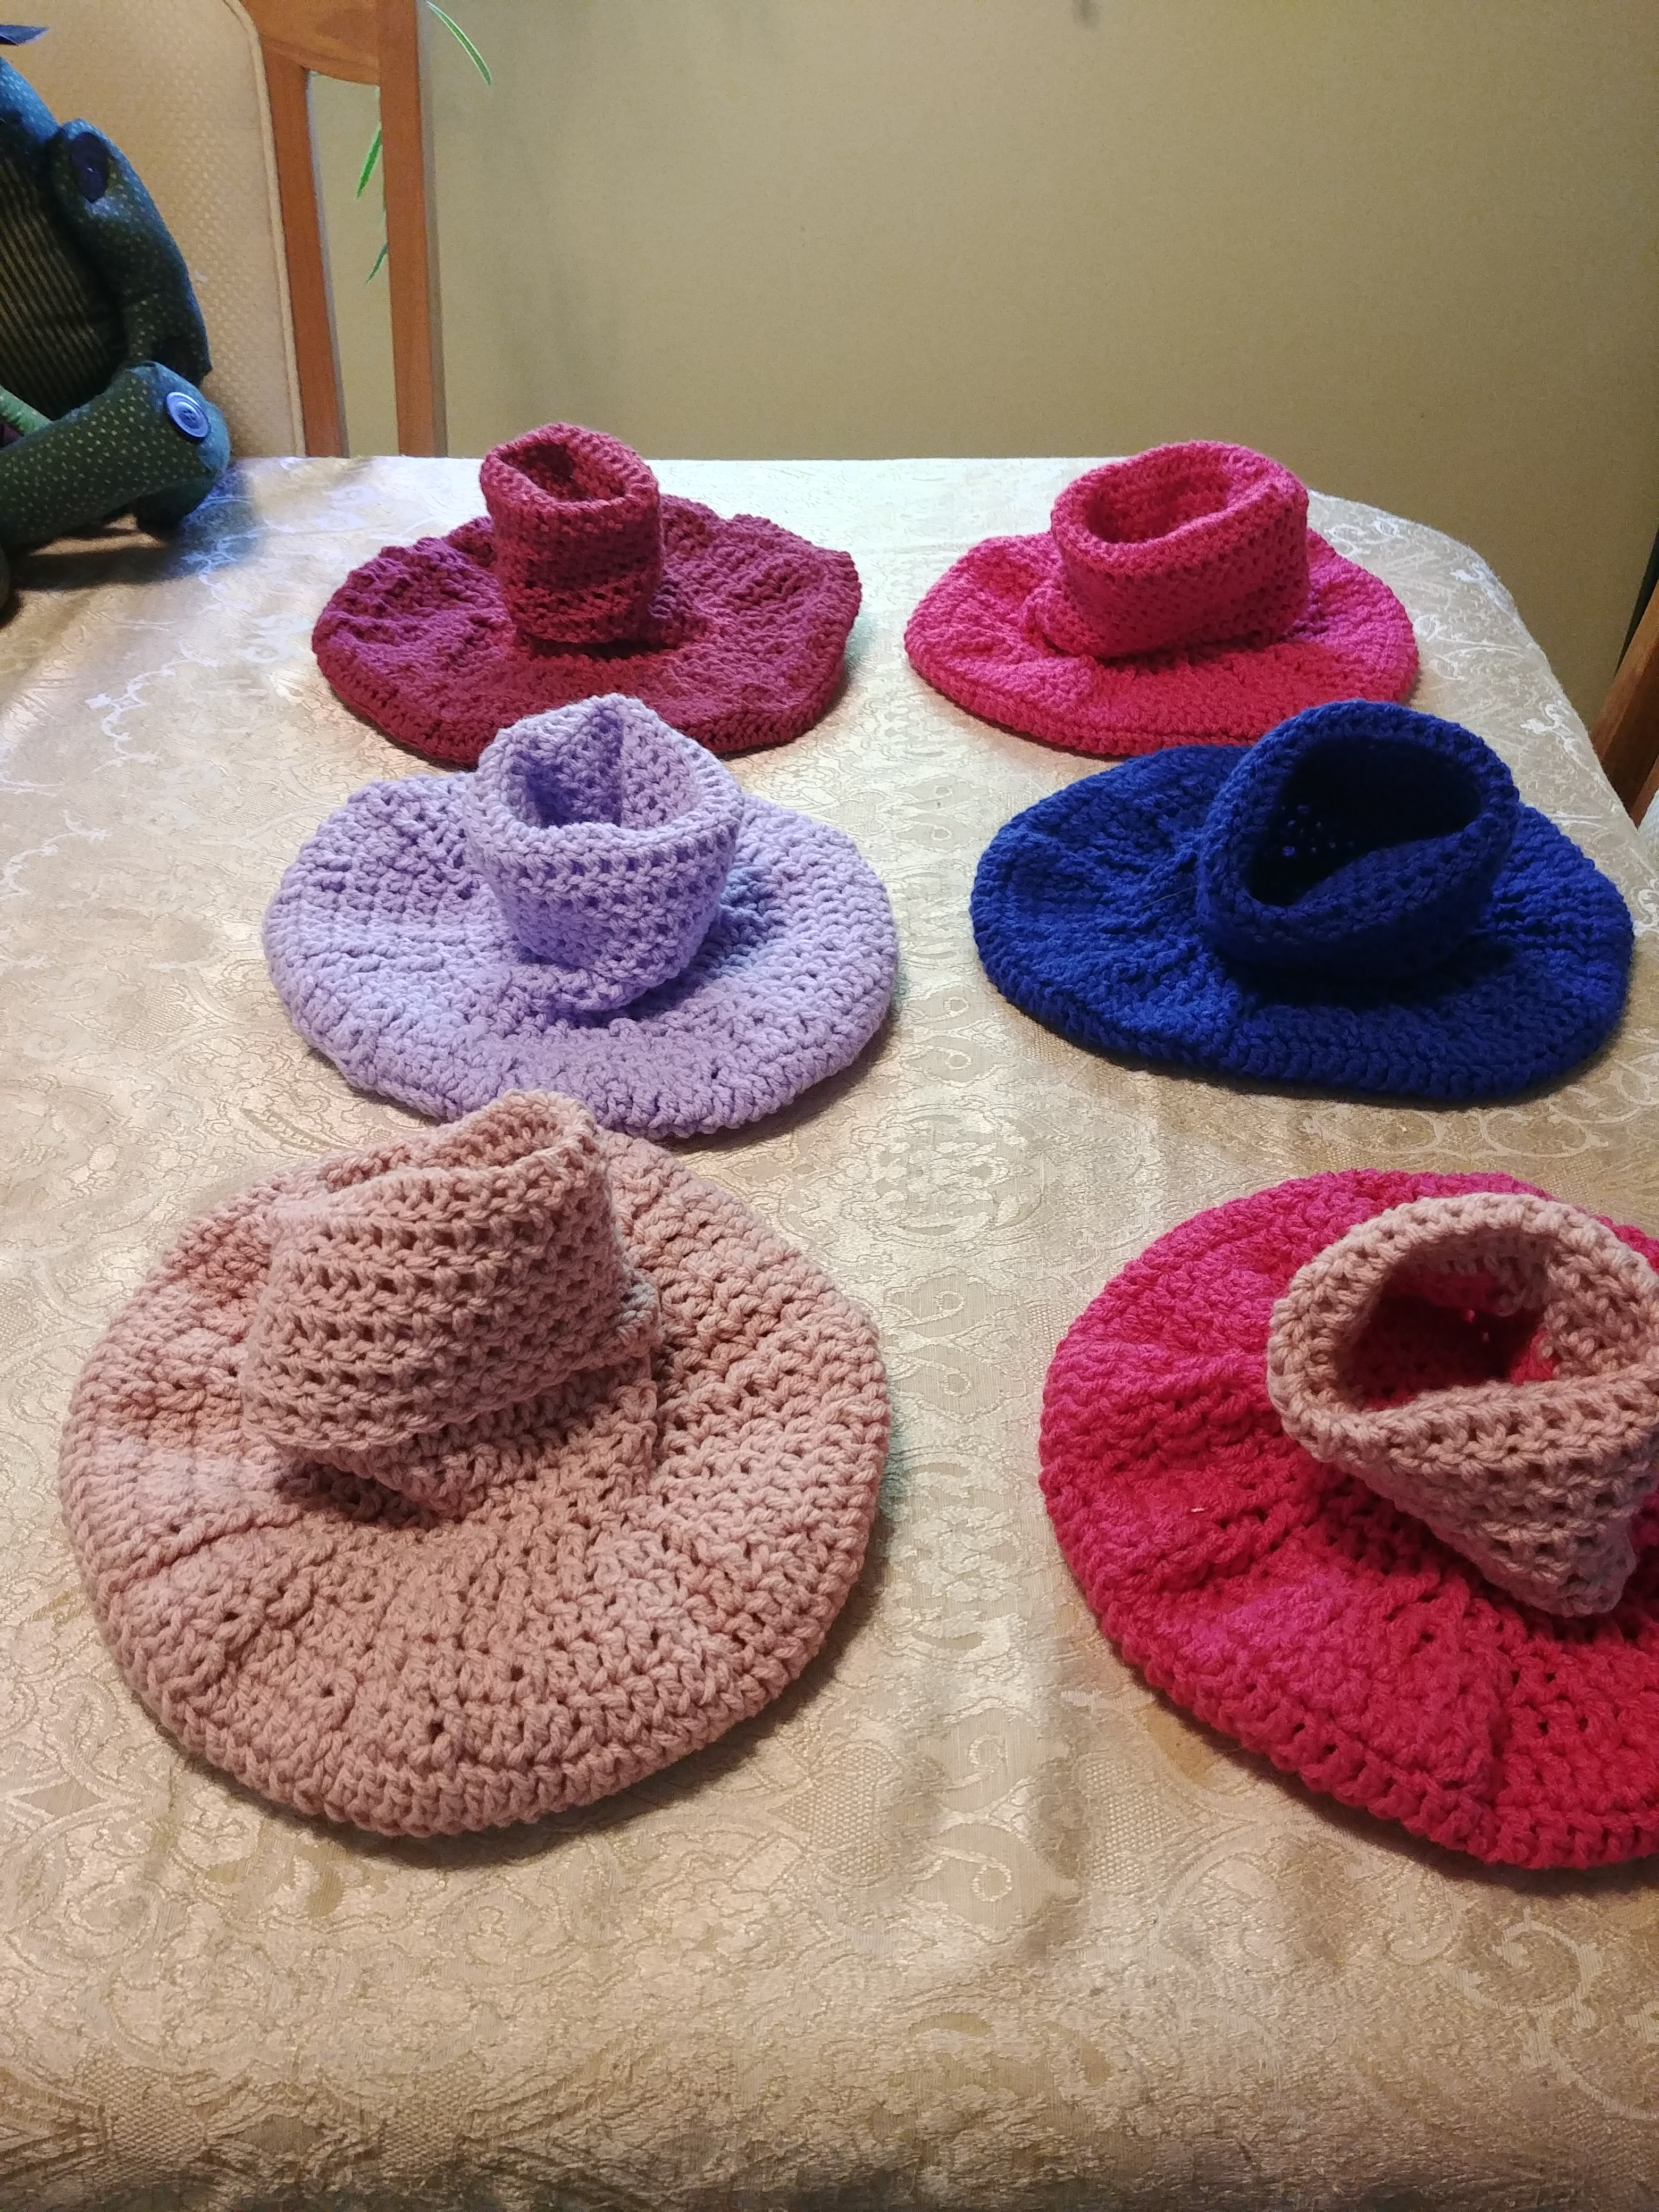 knit circle pouch bed in multiple colors